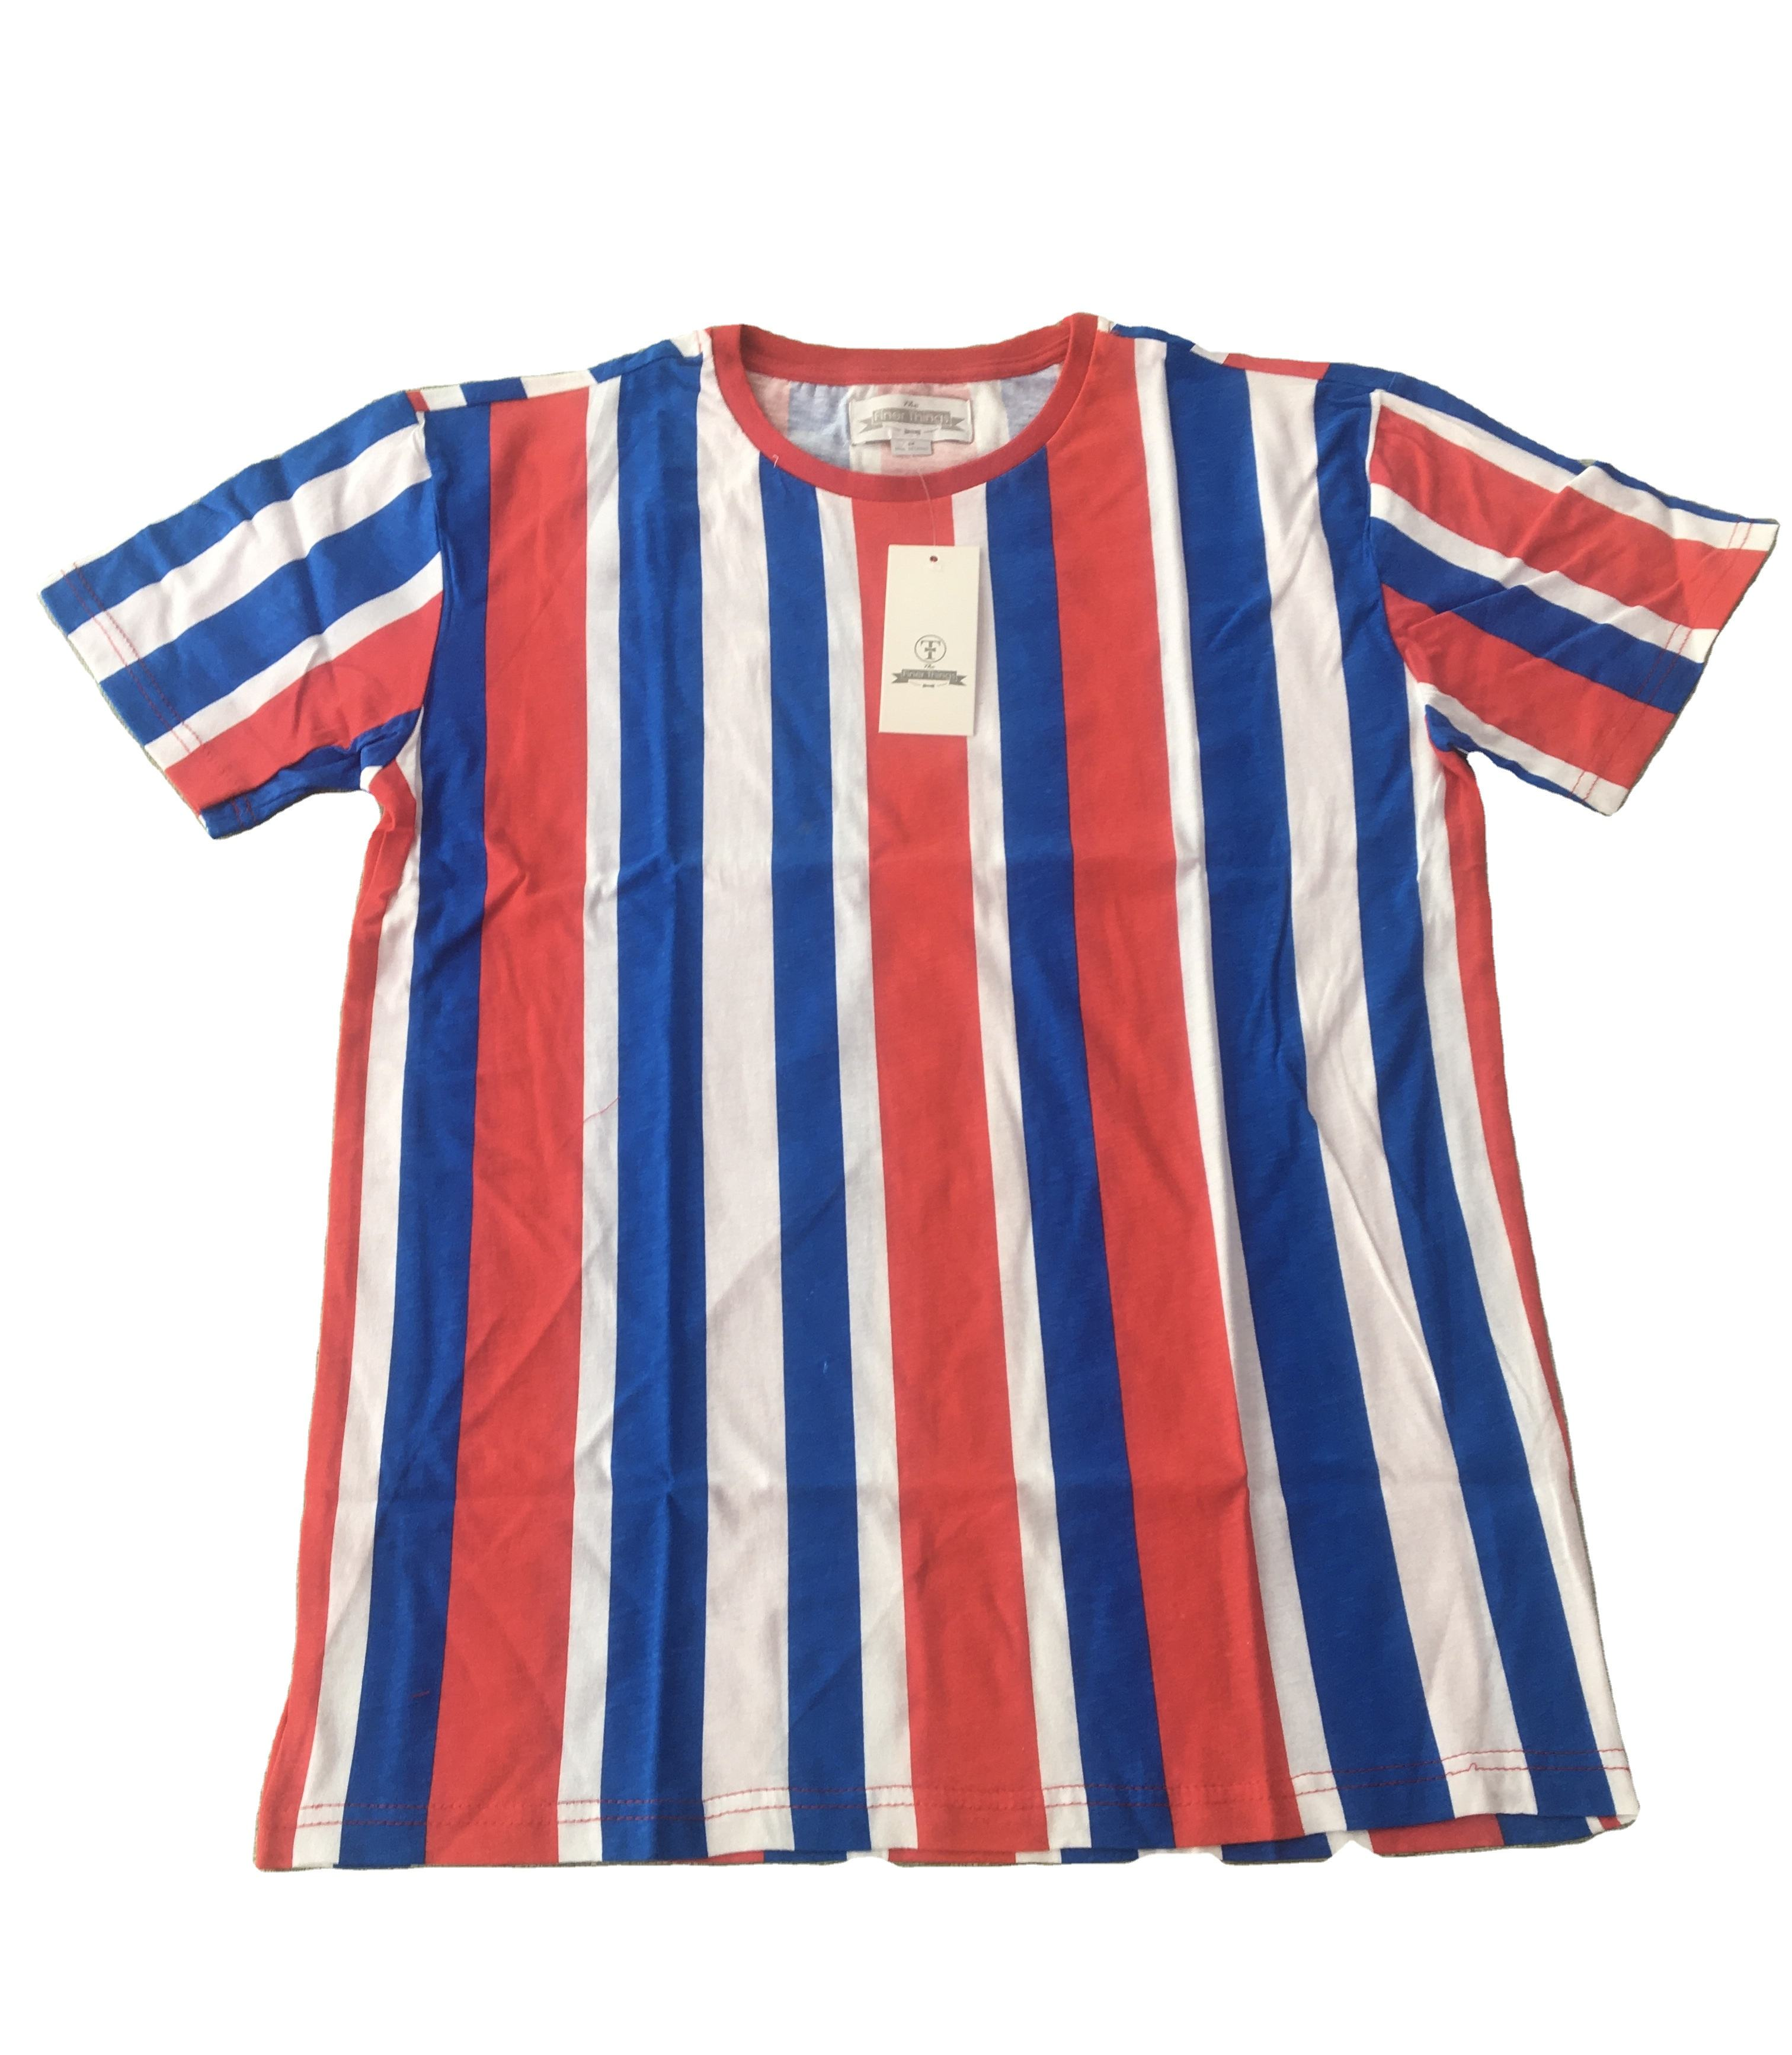 Men T Shirt Cotton Embroidery Short Sleeved Strip Tshirts Vertical Stripe T Shirt